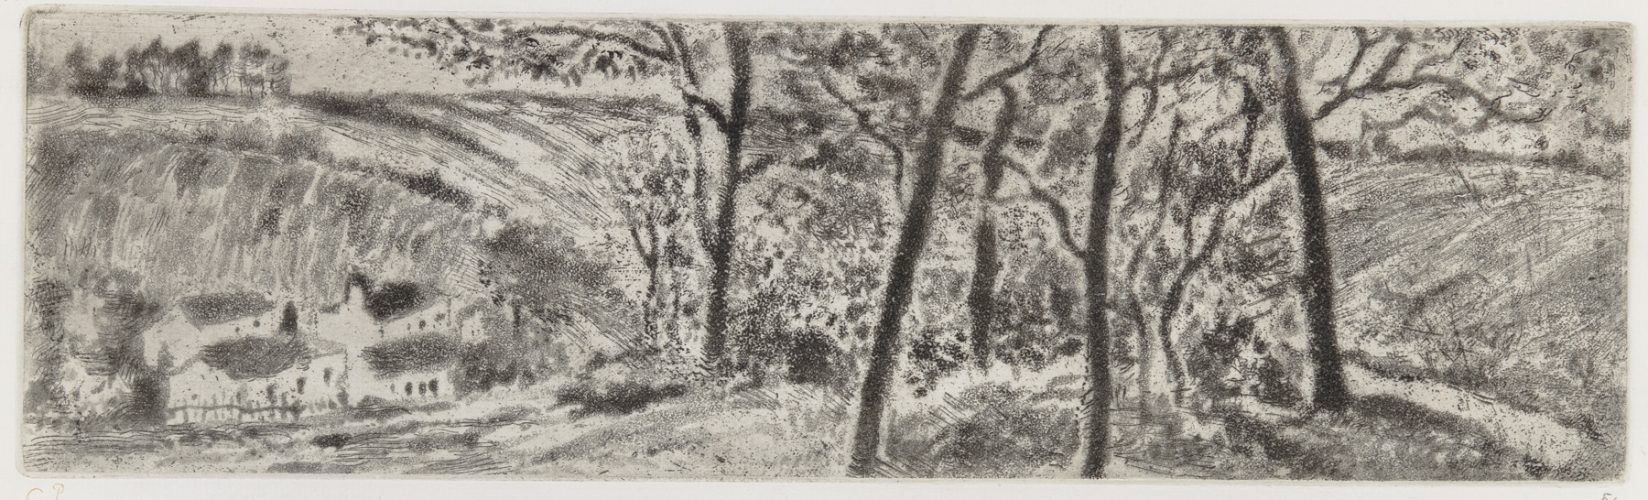 Paysage En Long (landscape Panorama) by Camille Pissarro at